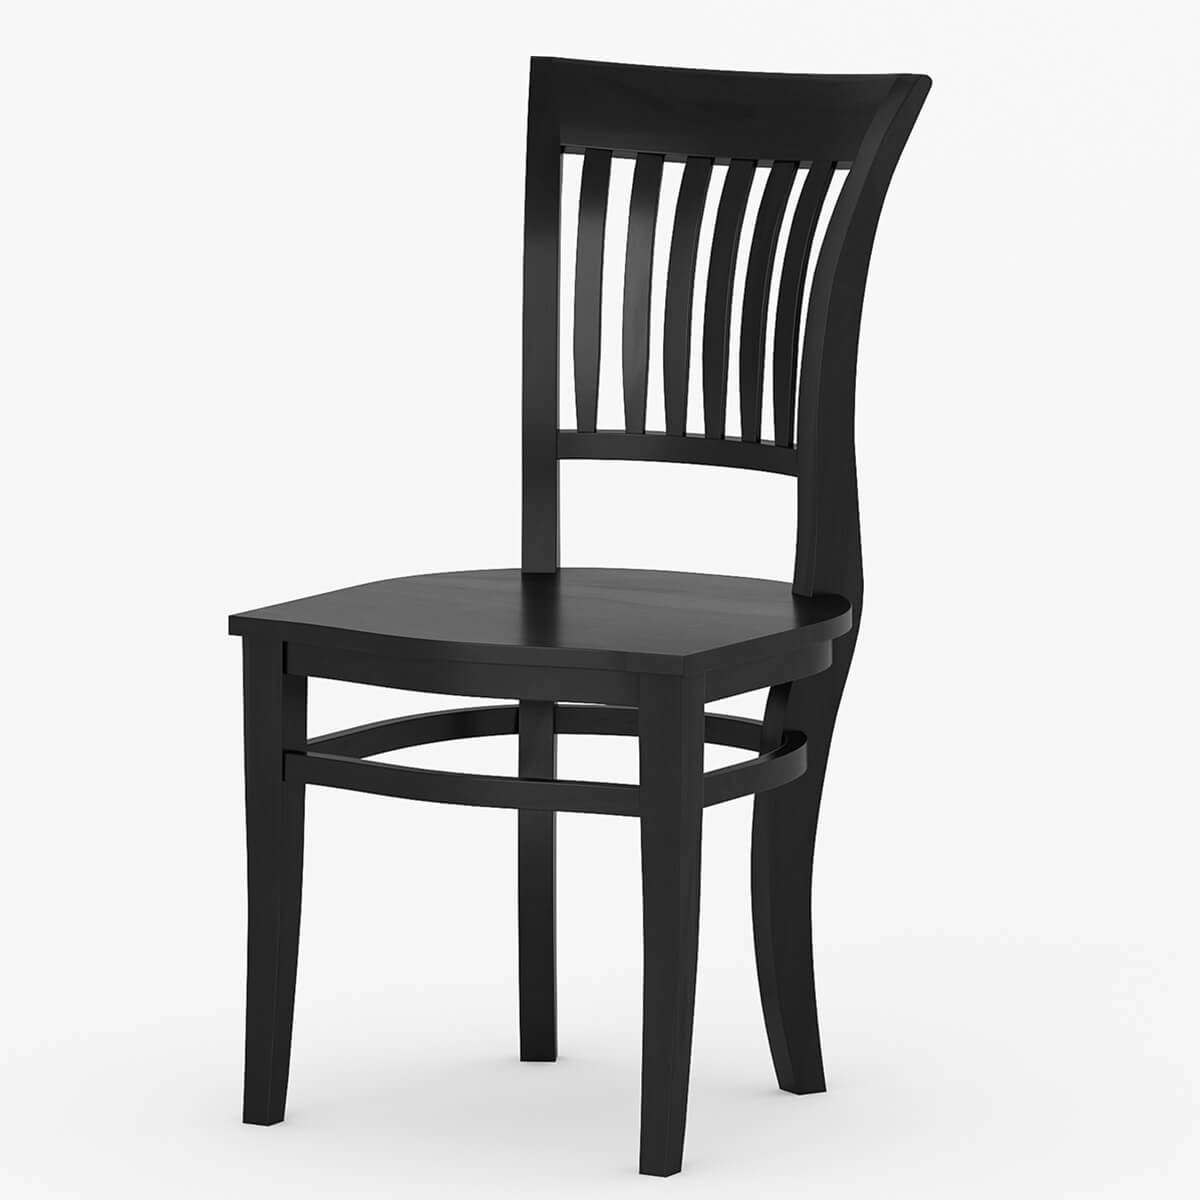 Sierra nevada solid wood kitchen side dining chair furniture for Furniture chairs